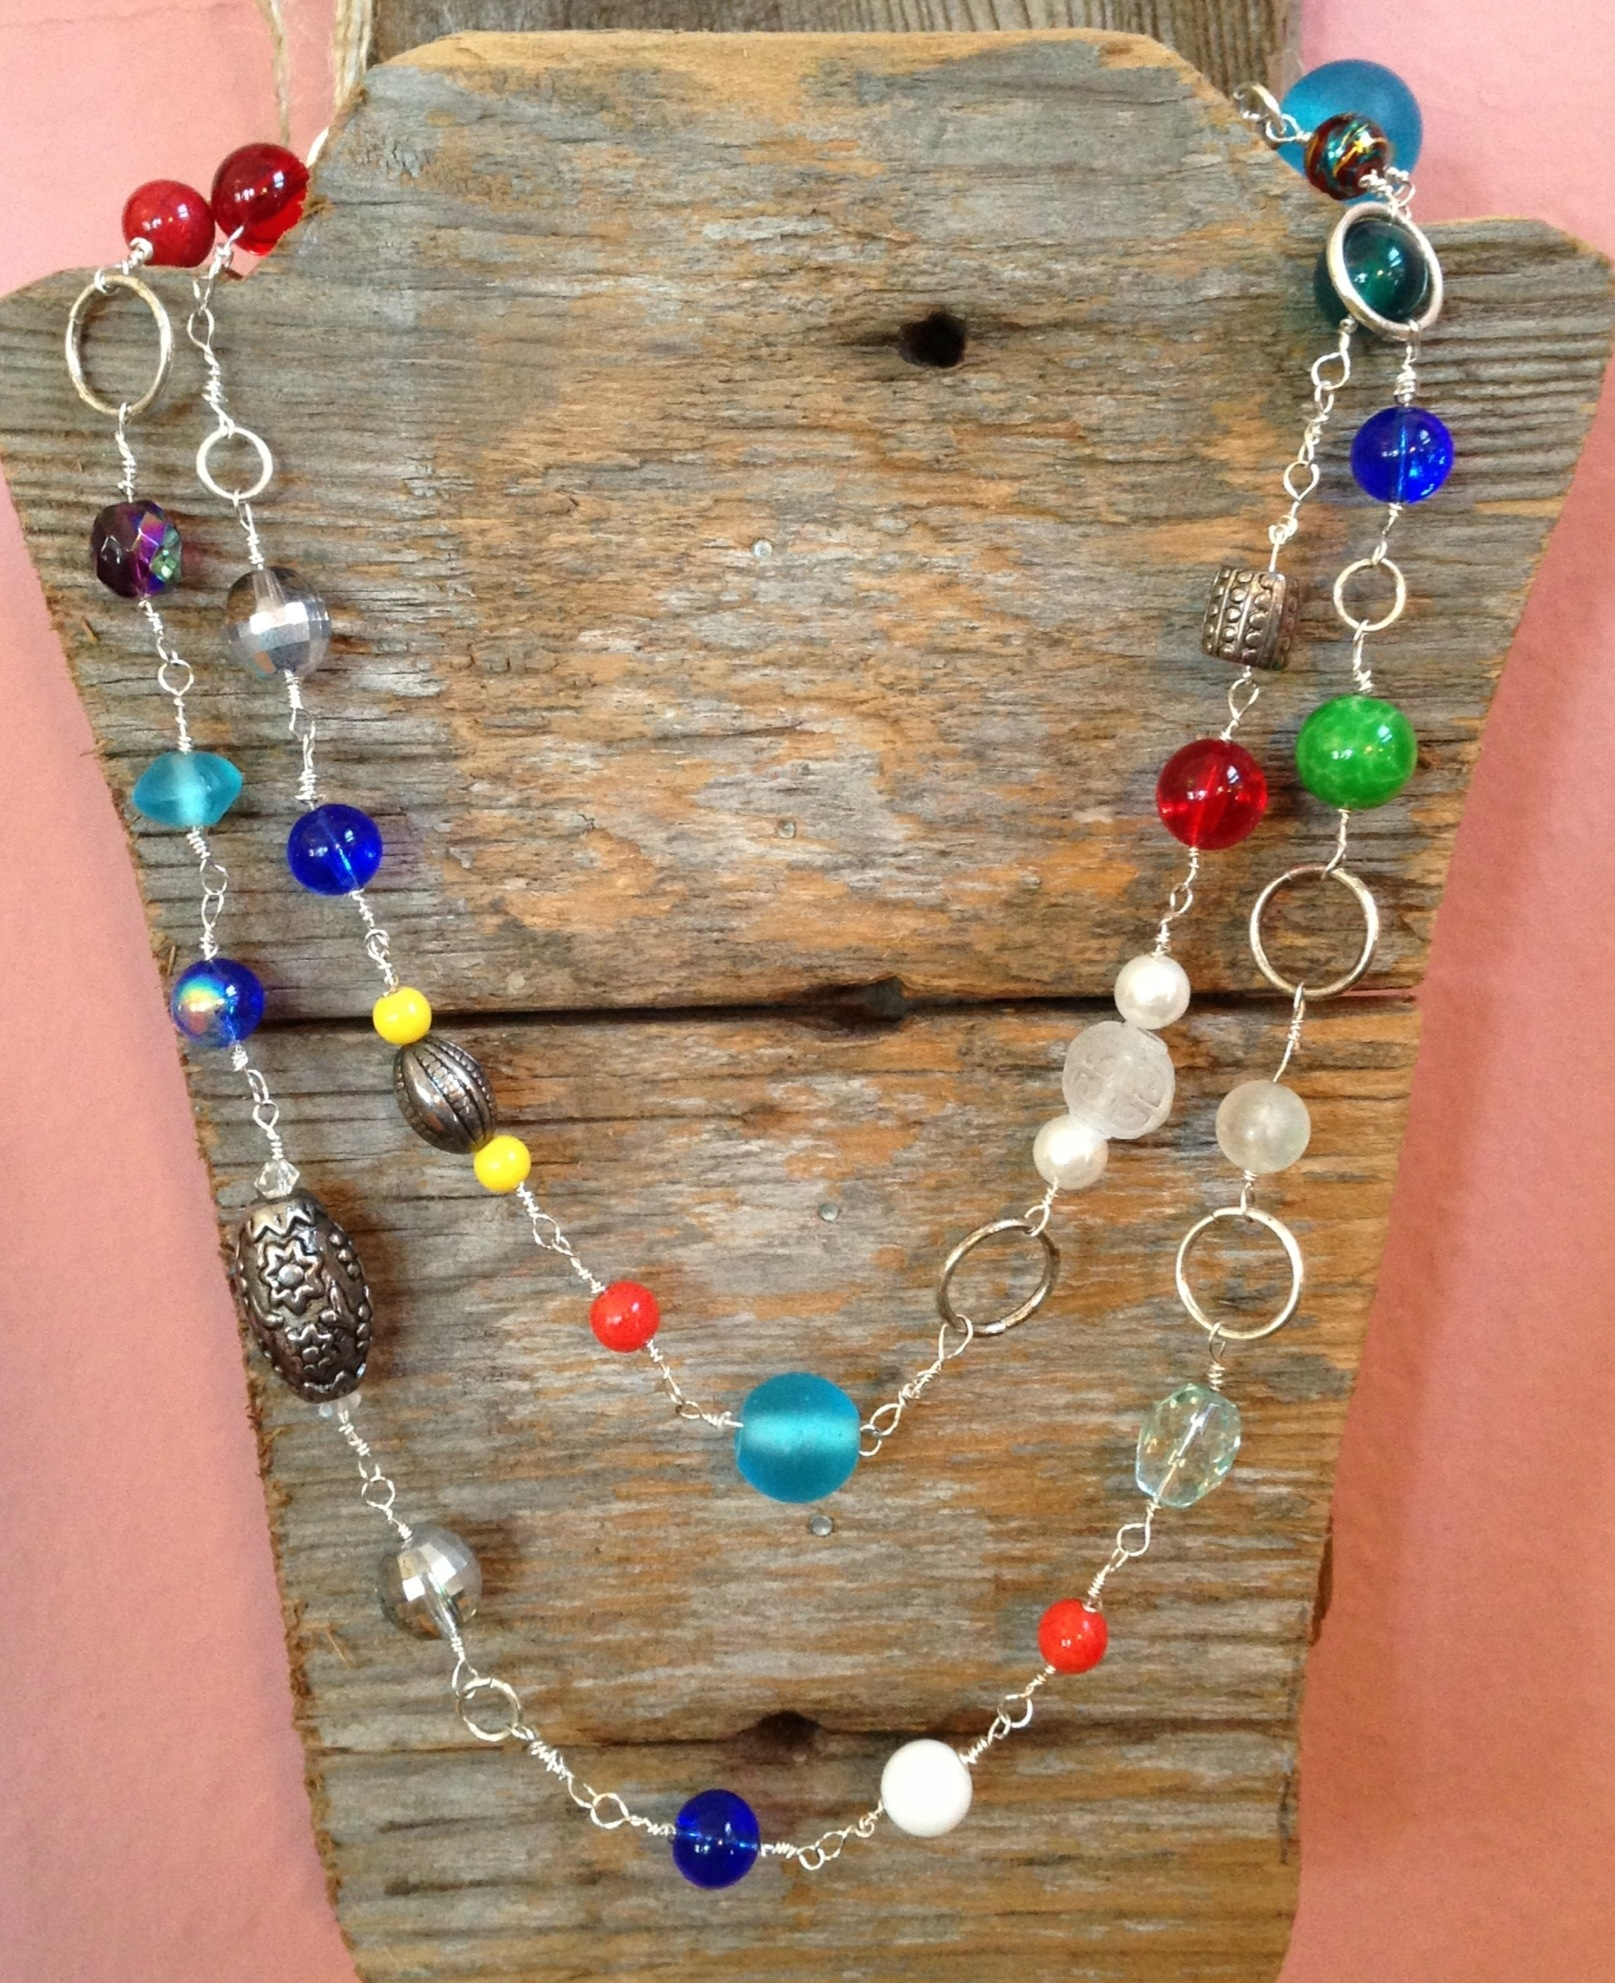 Handcrafted Bead and Wire Necklace from Angie's Originals.  www.angiesoriginals.com